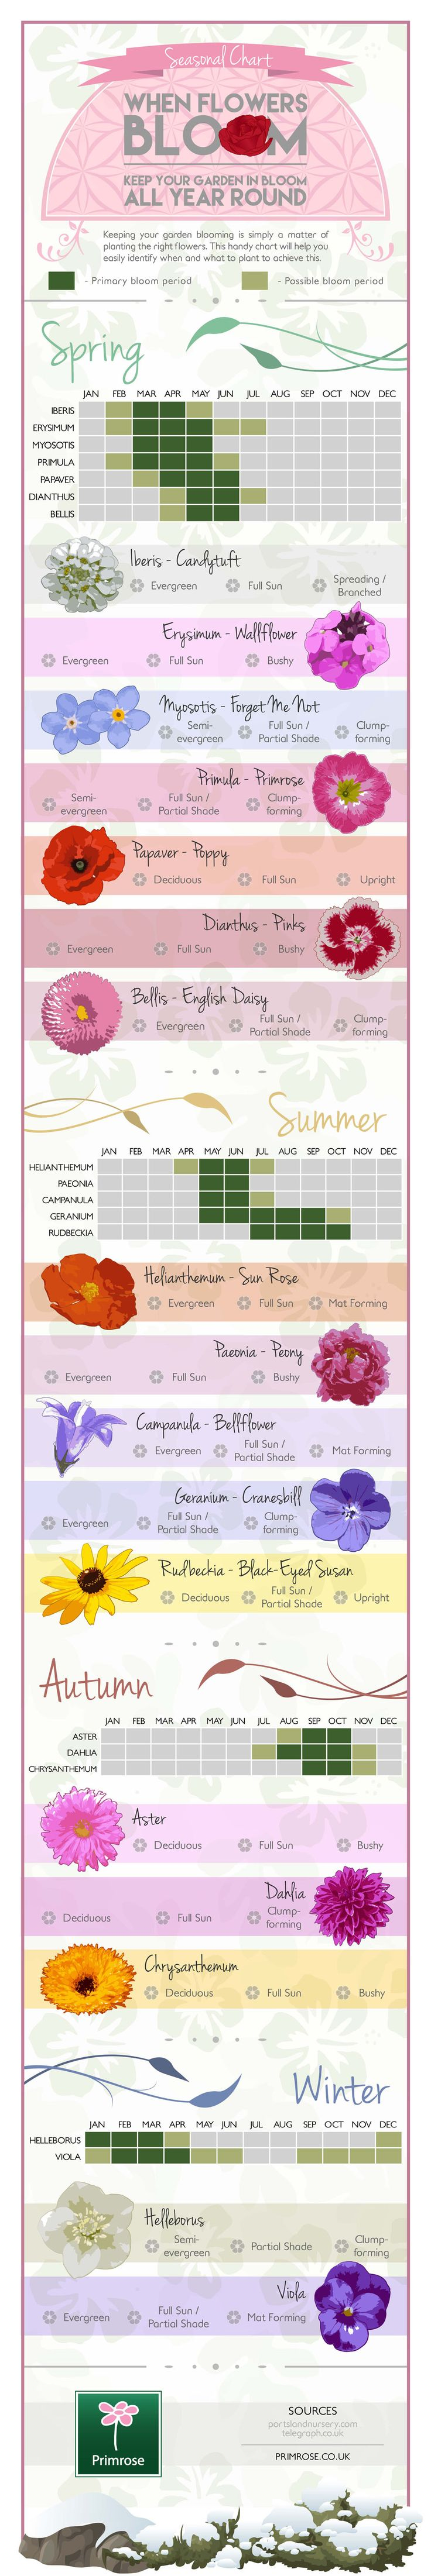 Do you wish your garden could be in bloom all year long? All it takes is knowing which flowers to plant in each season and you're guaranteed a colorful garden whatever time of year. Primrose.co.uk has created this infographic so you can simply pick your favorite plants for each season.